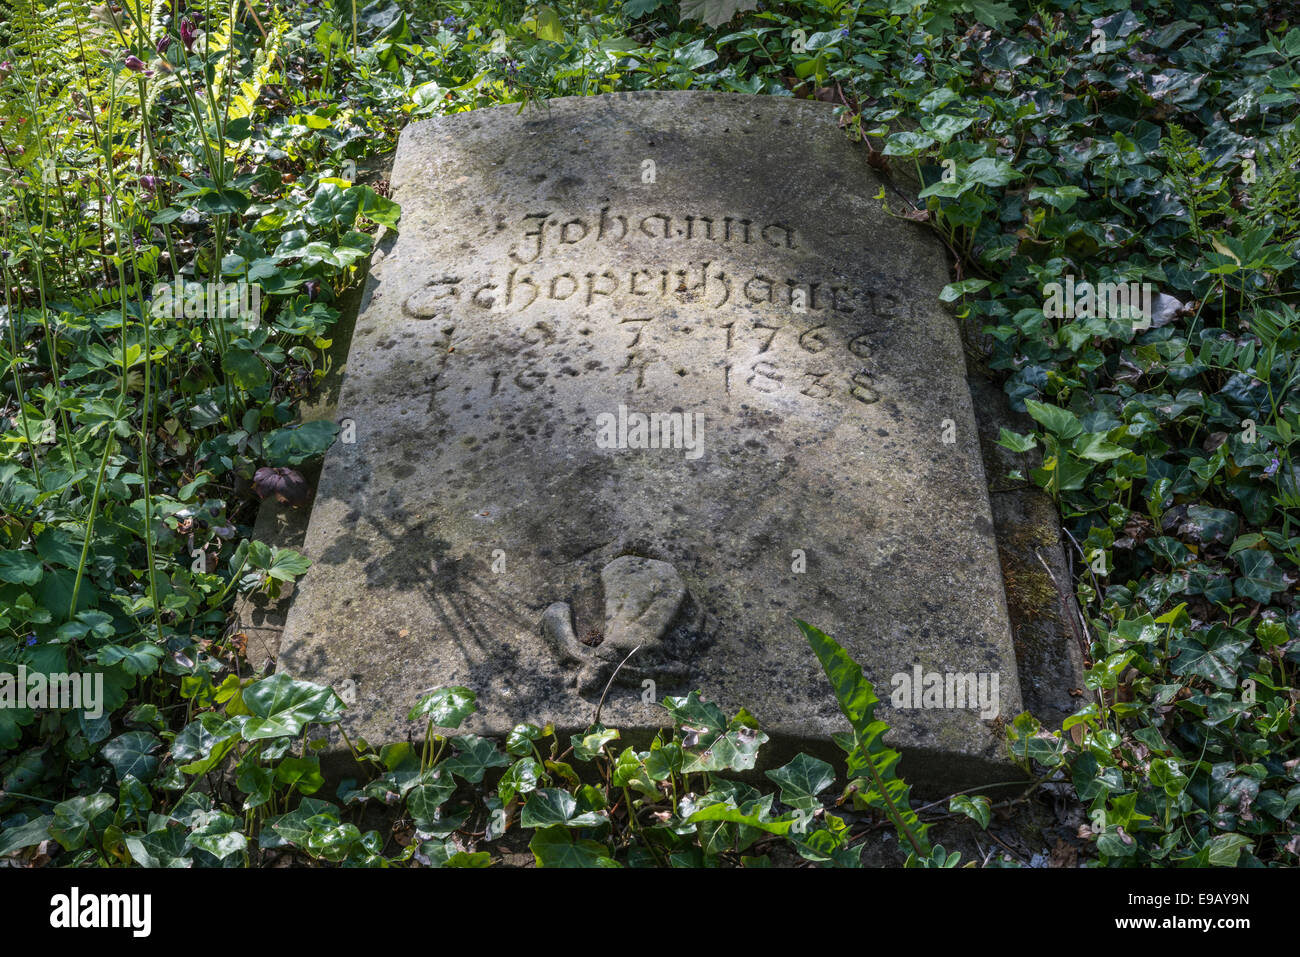 Grave stone for Johanna Schopenhauer, author and mother of the philosopher Schopenhauer, relief and inscription, - Stock Image